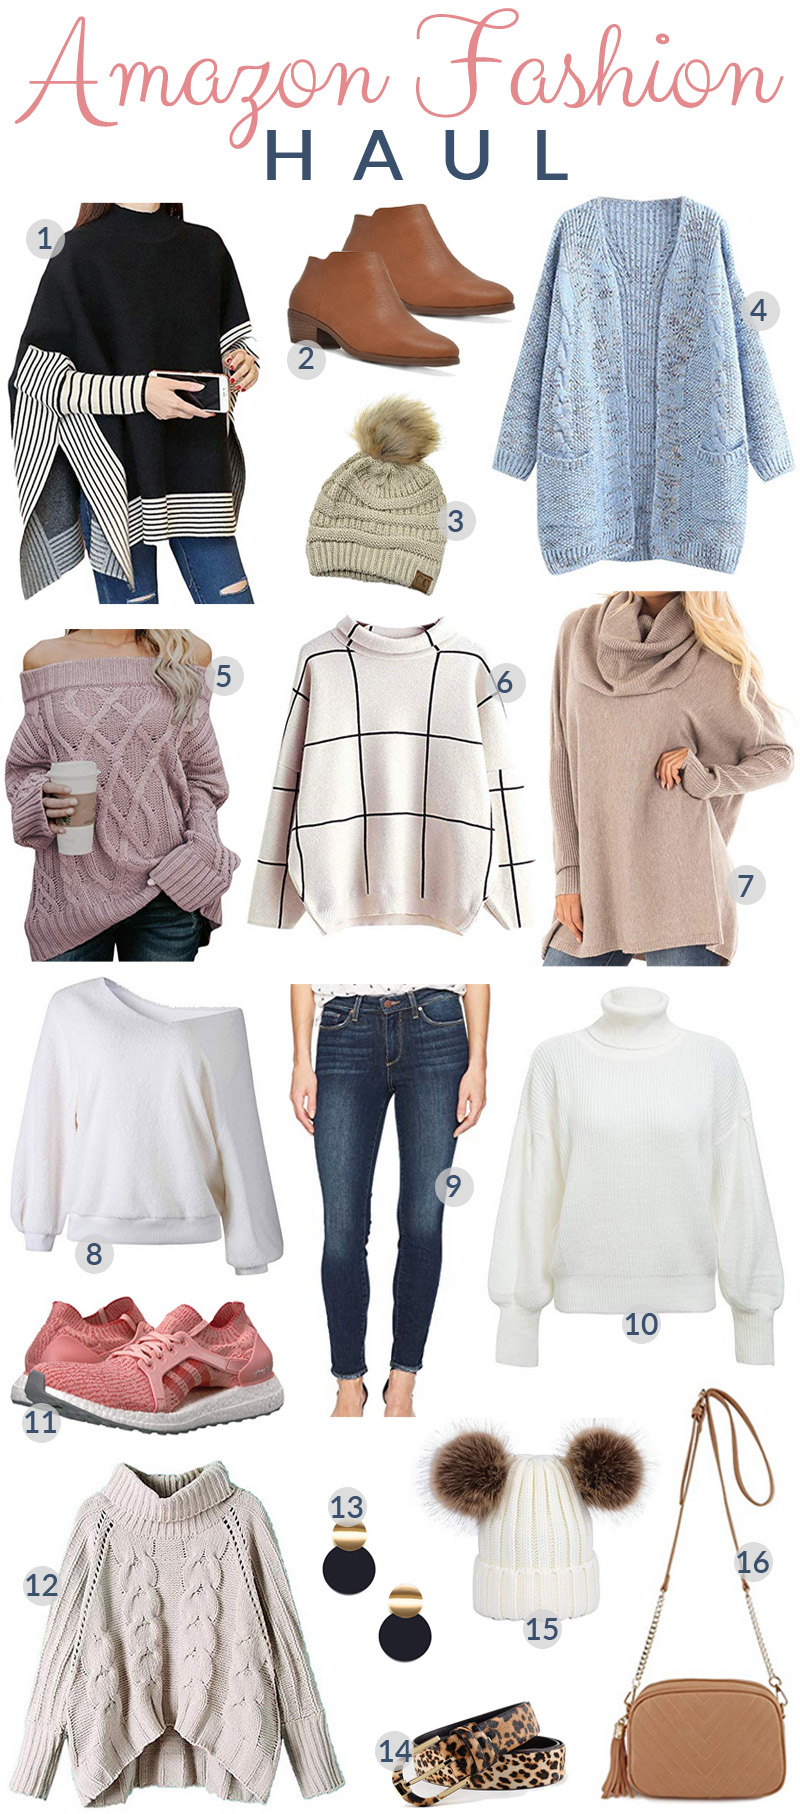 93c61cee35 Amazon Fashion Haul featured by top US fashion blog